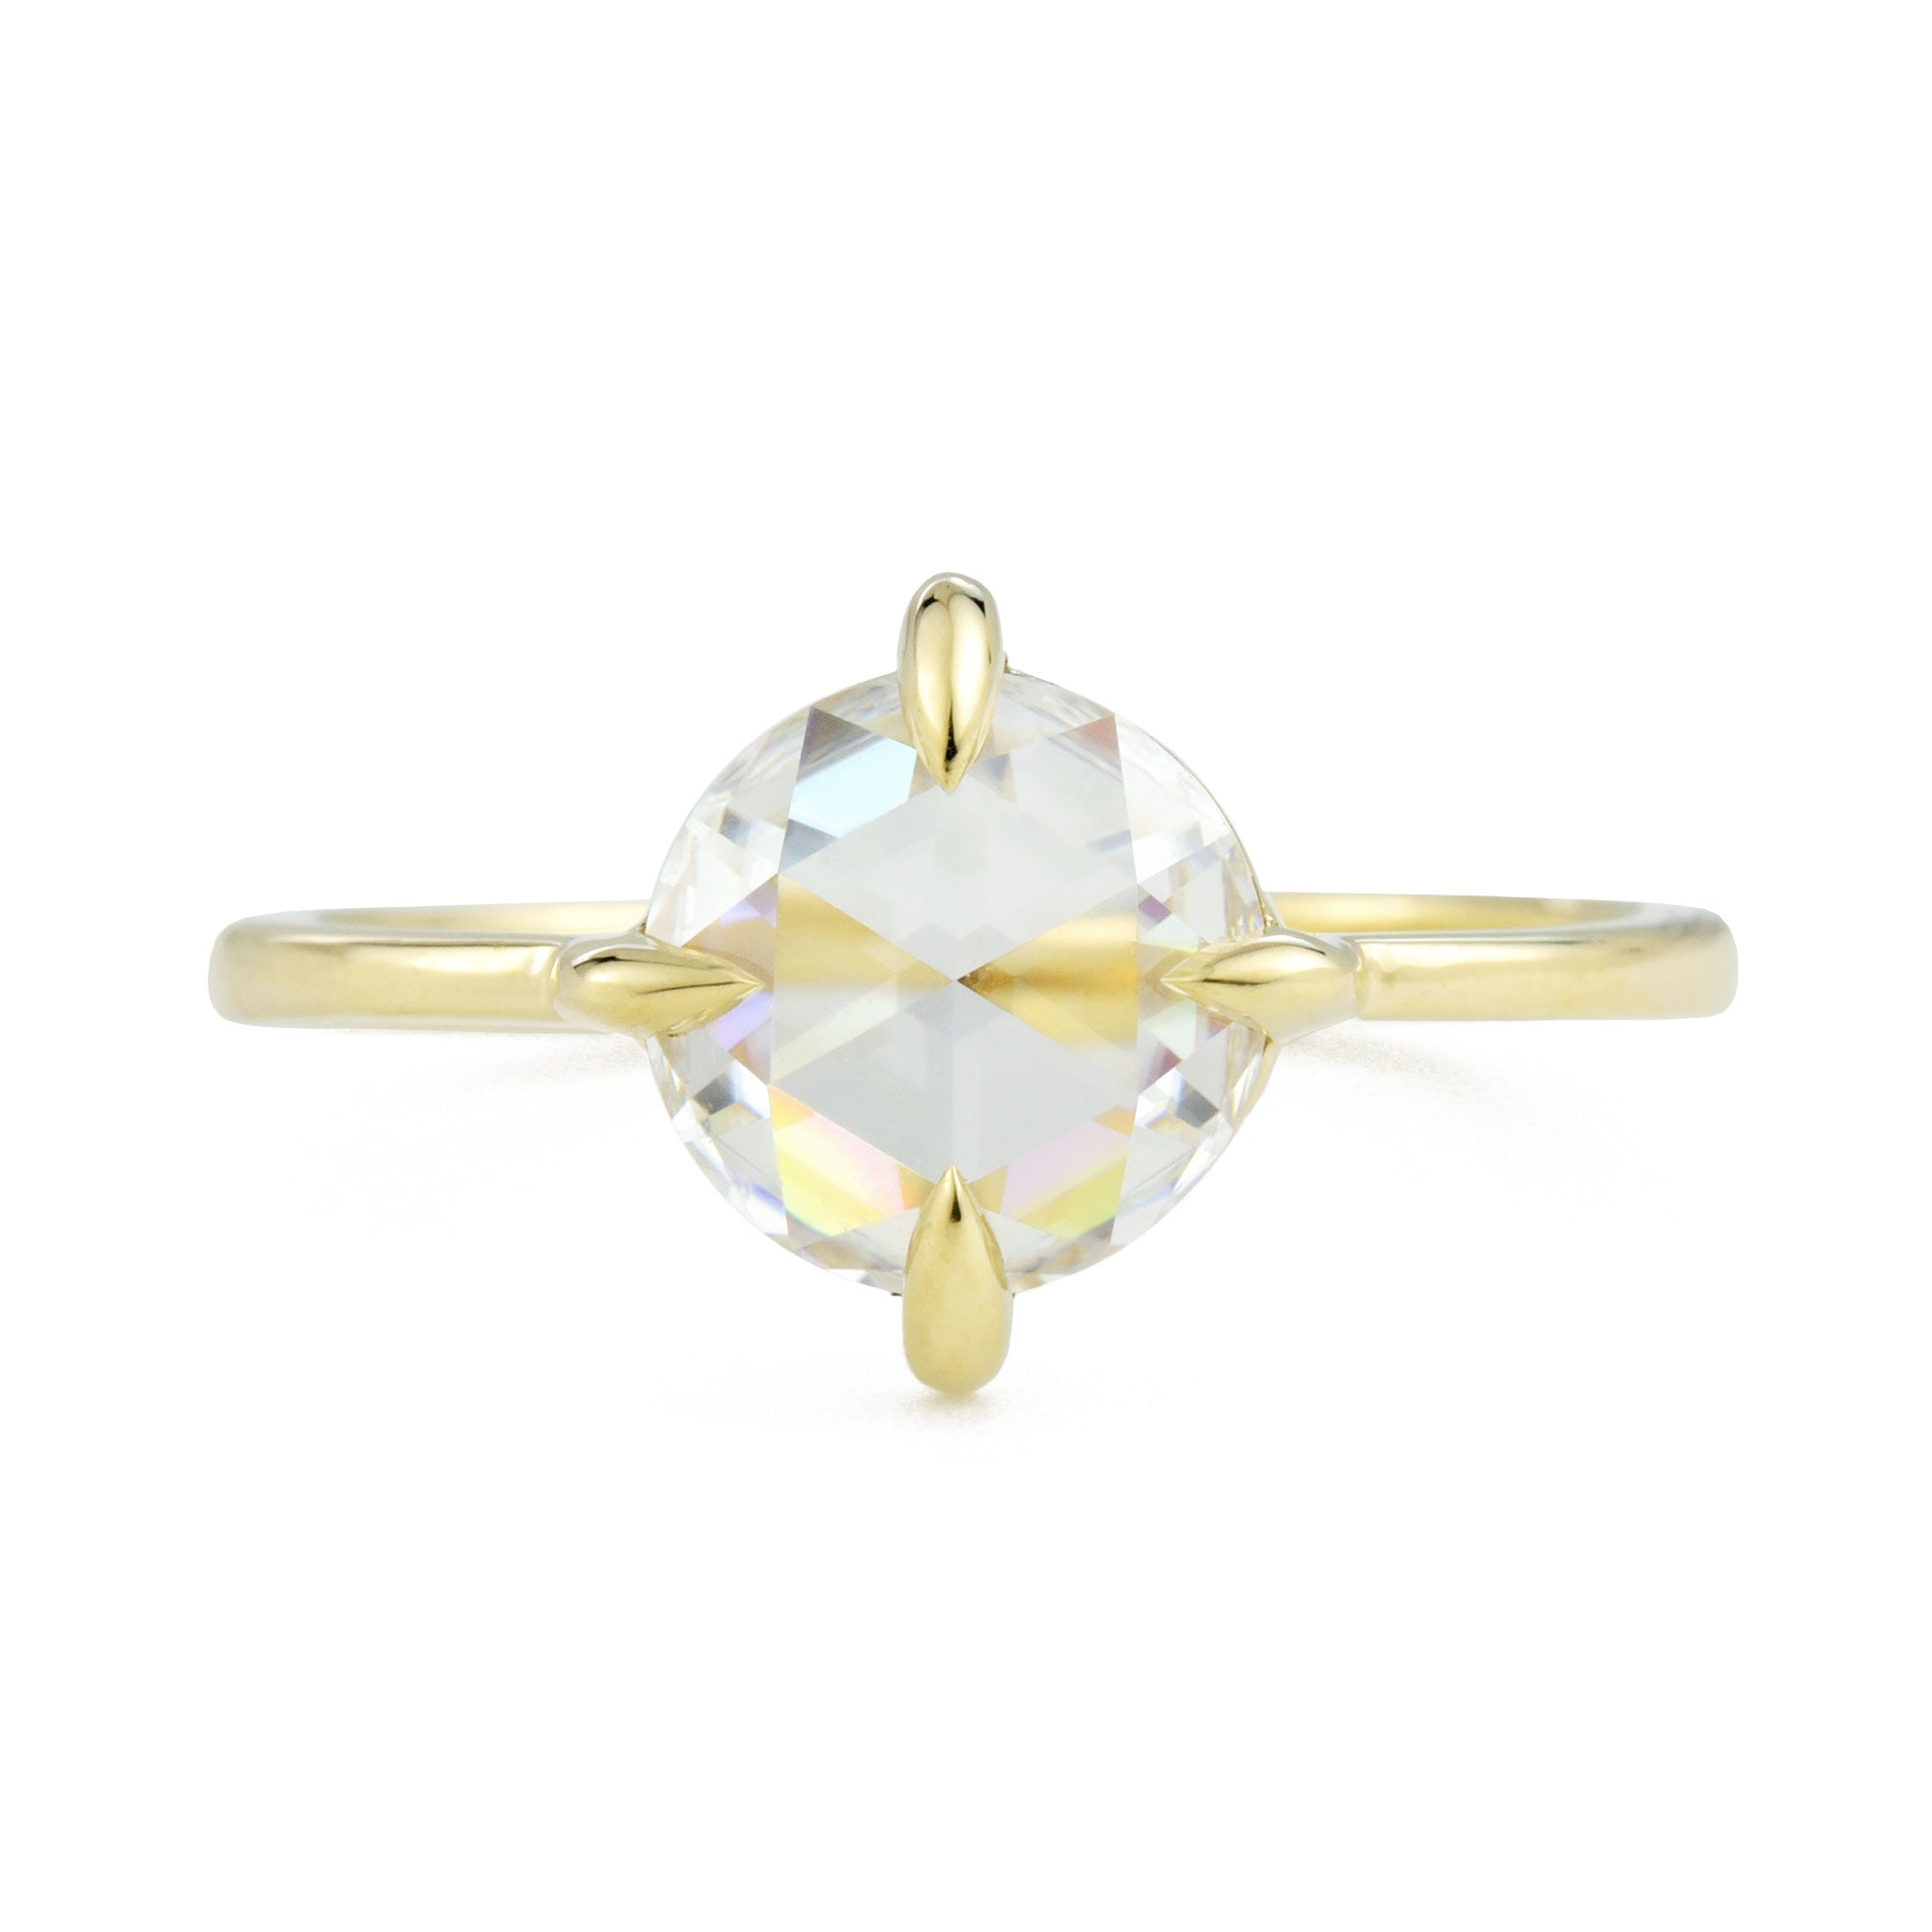 Eva Rose Cut Diamond Engagement Ring in yellow gold